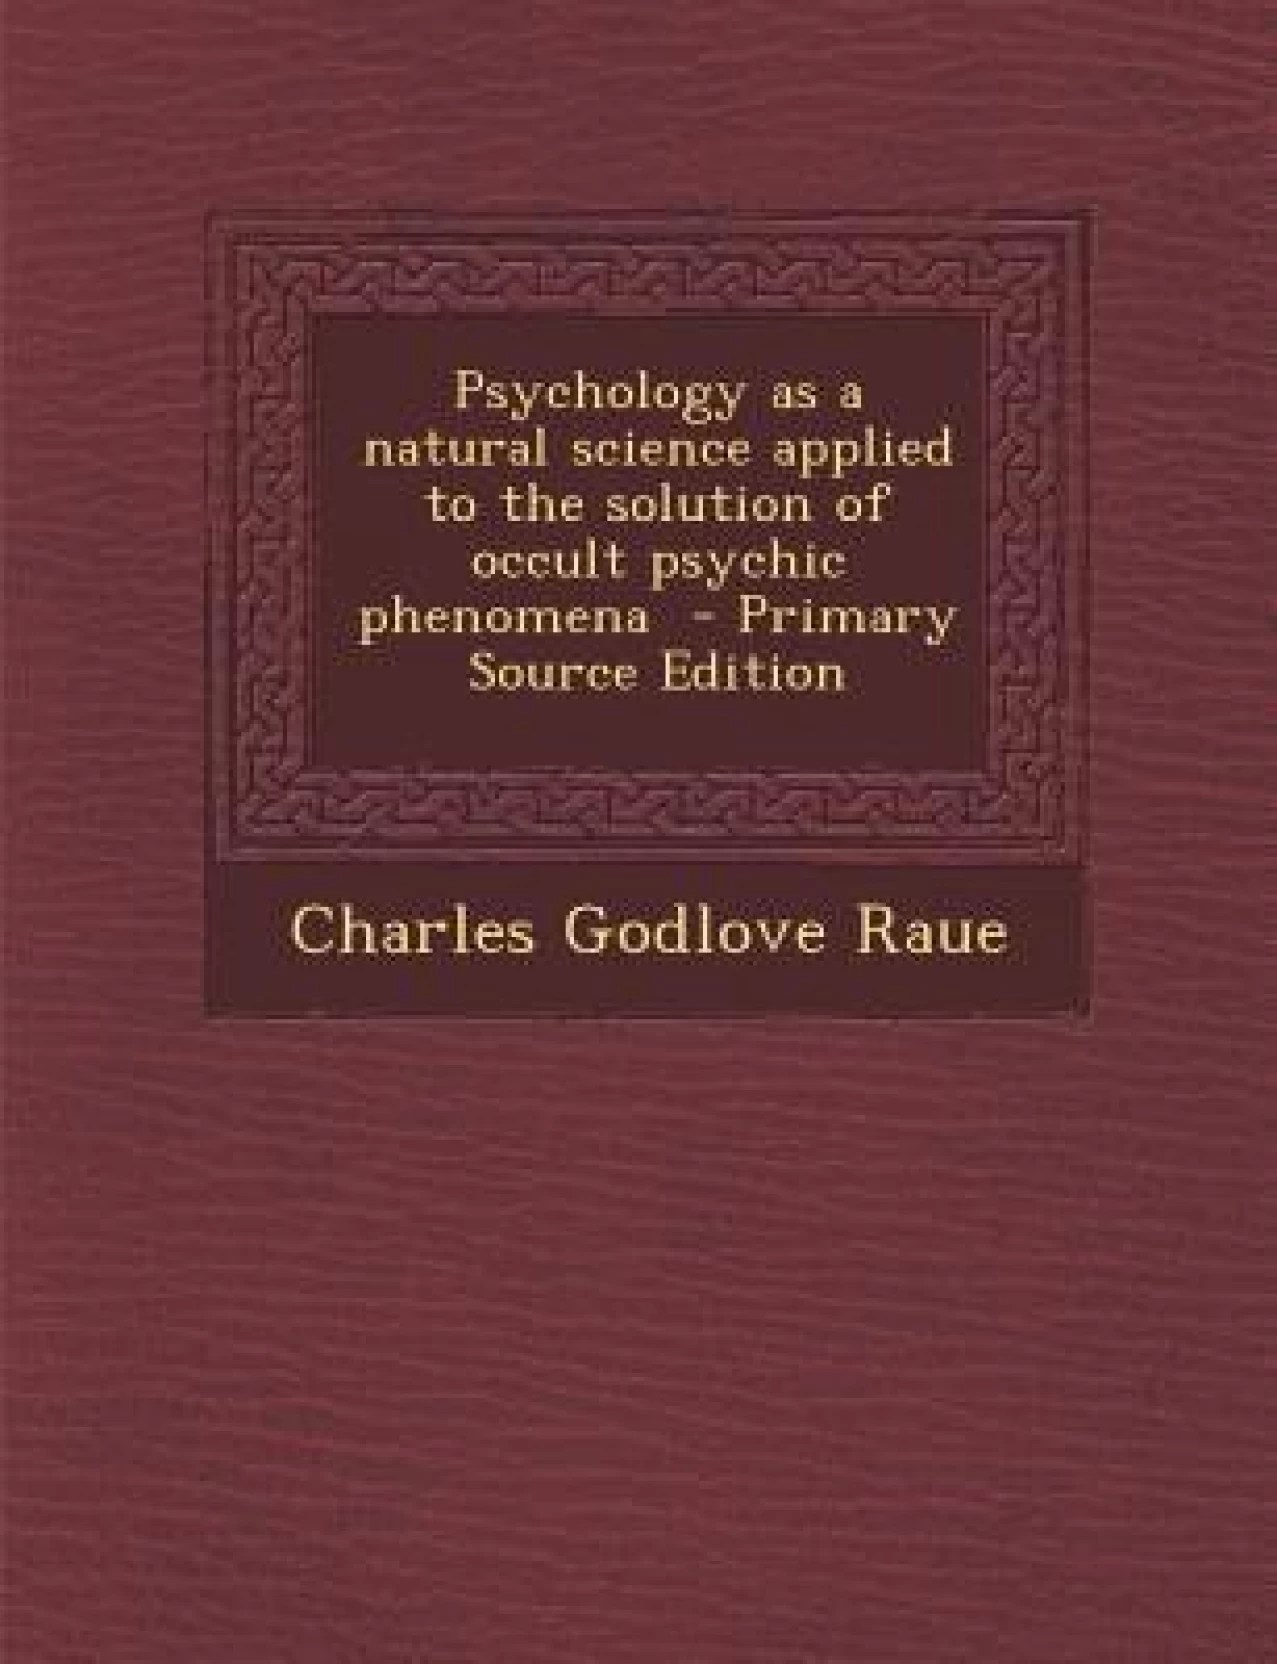 Raue Shop Psychology As A Natural Science Applied To The Solution Of Occult